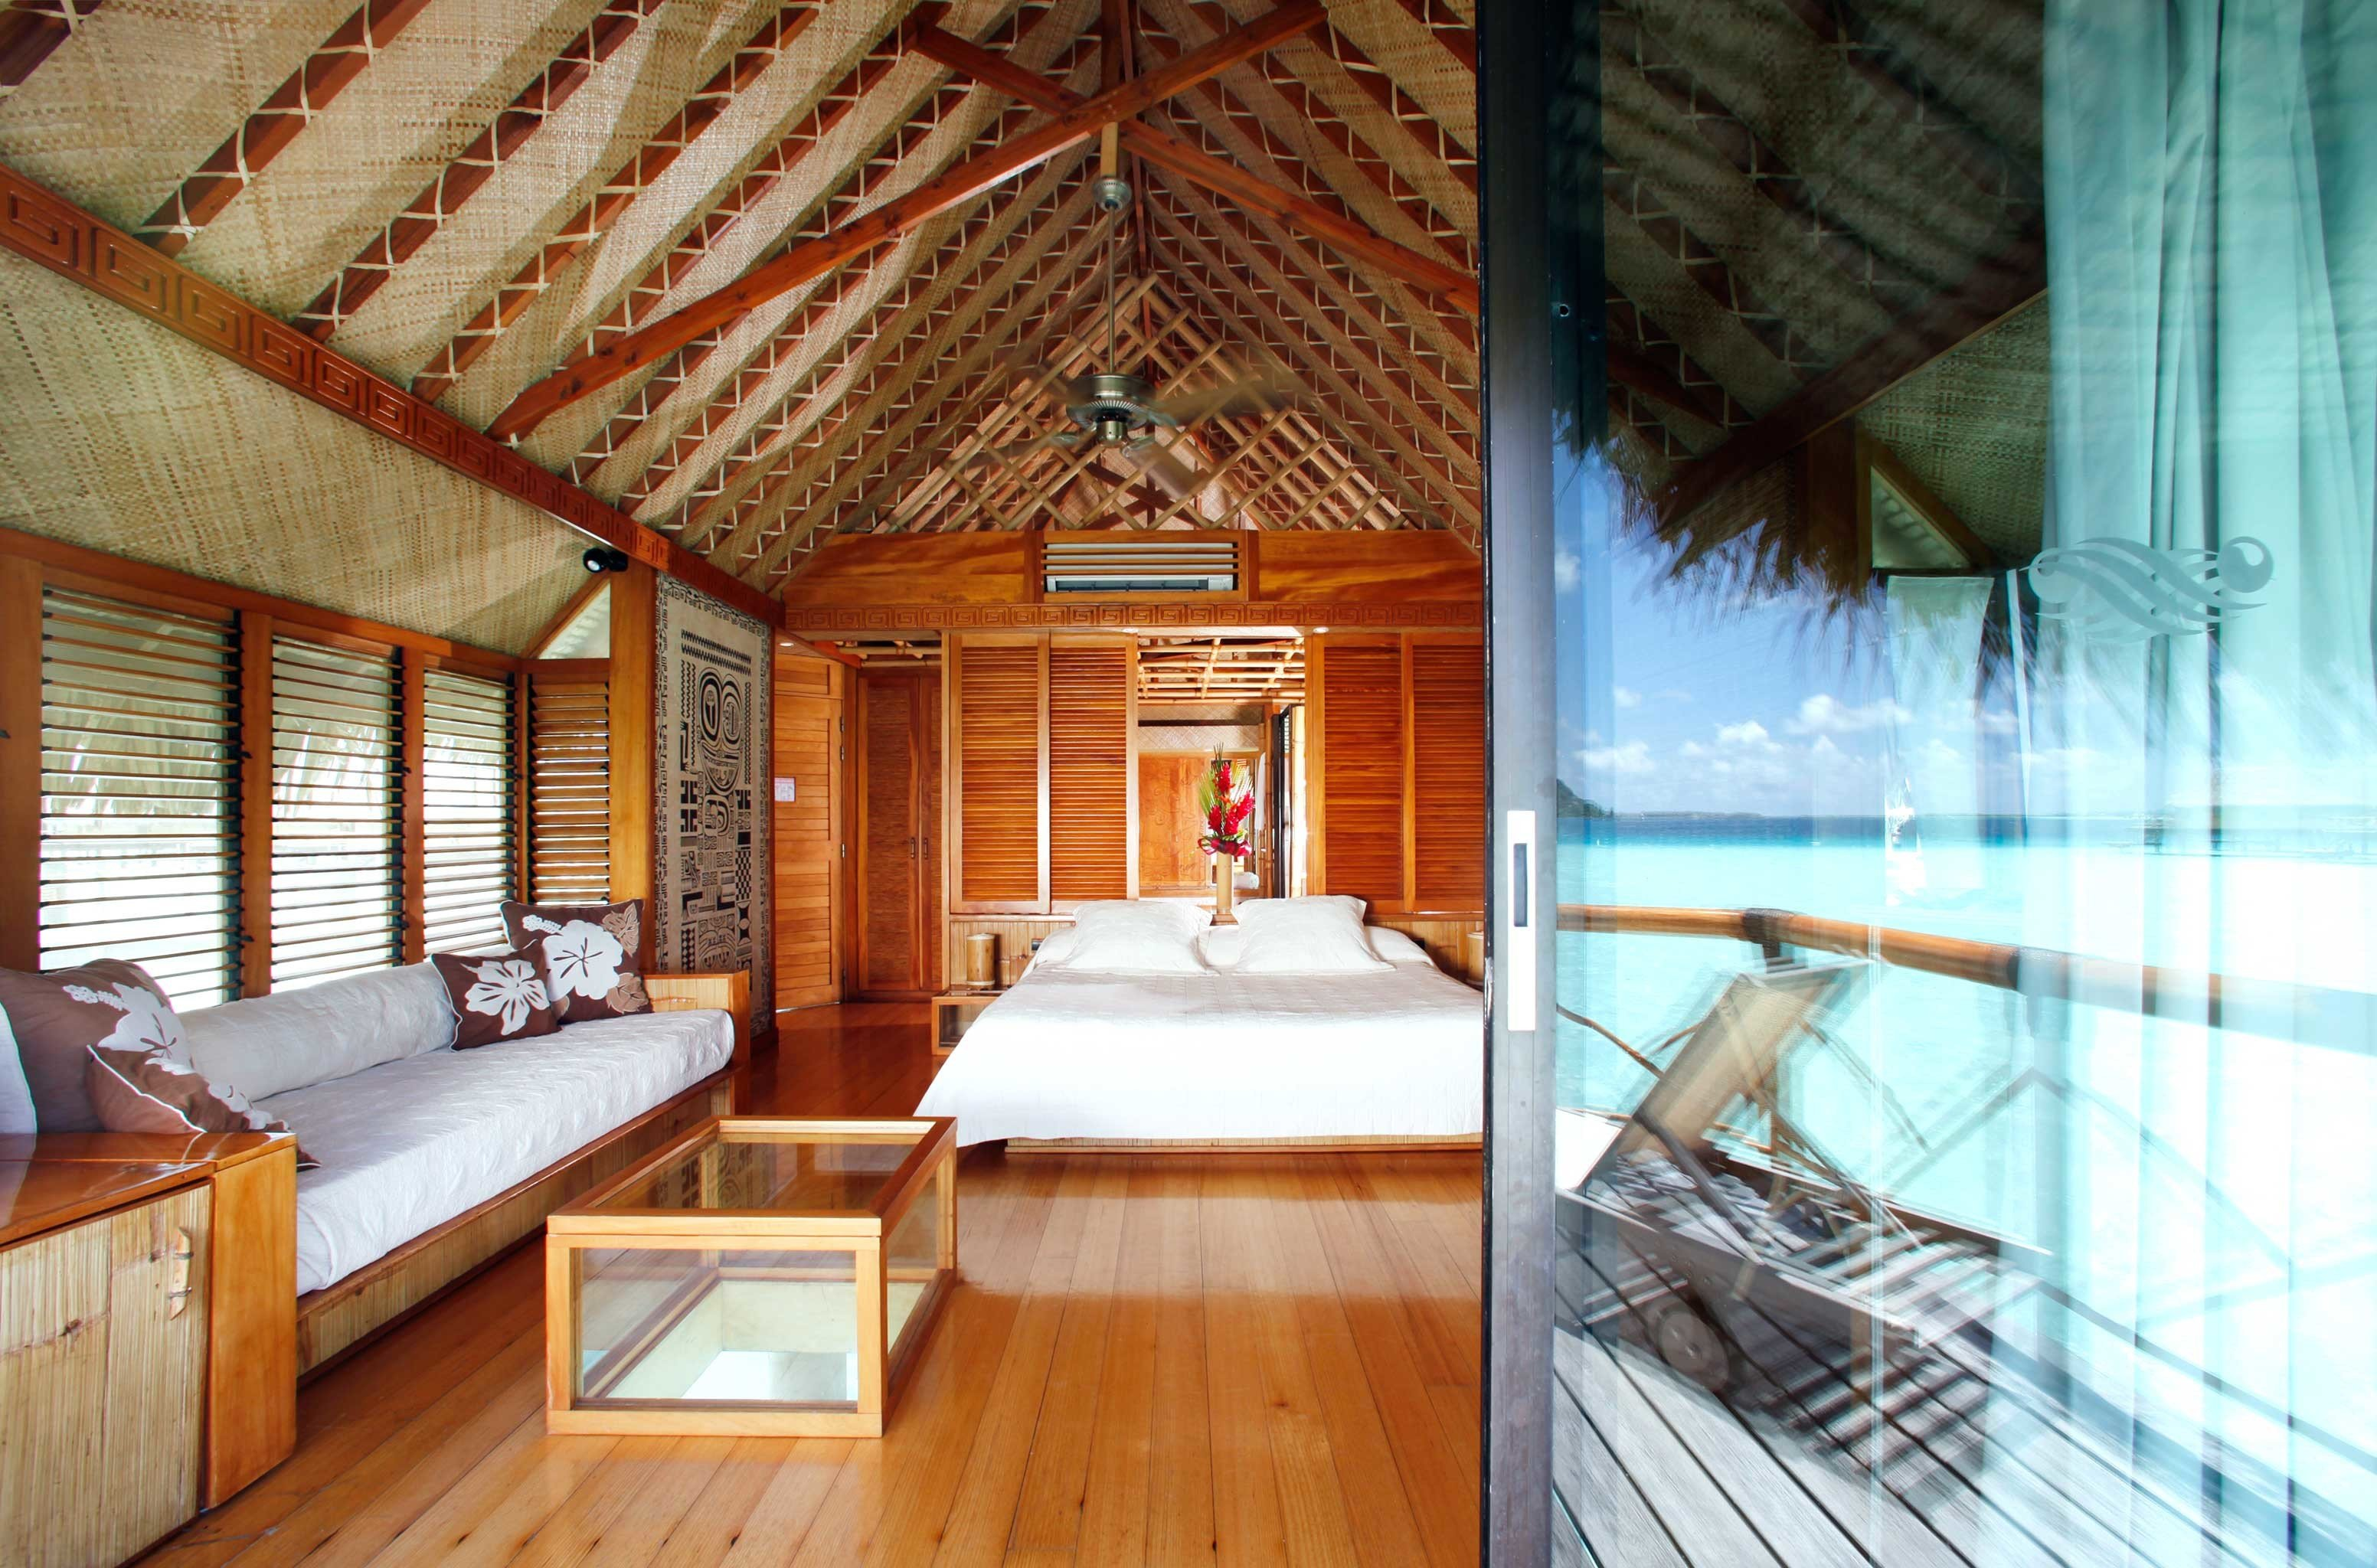 Beach Deck Eco Hotels Island Luxury property building house home cottage log cabin mansion farmhouse